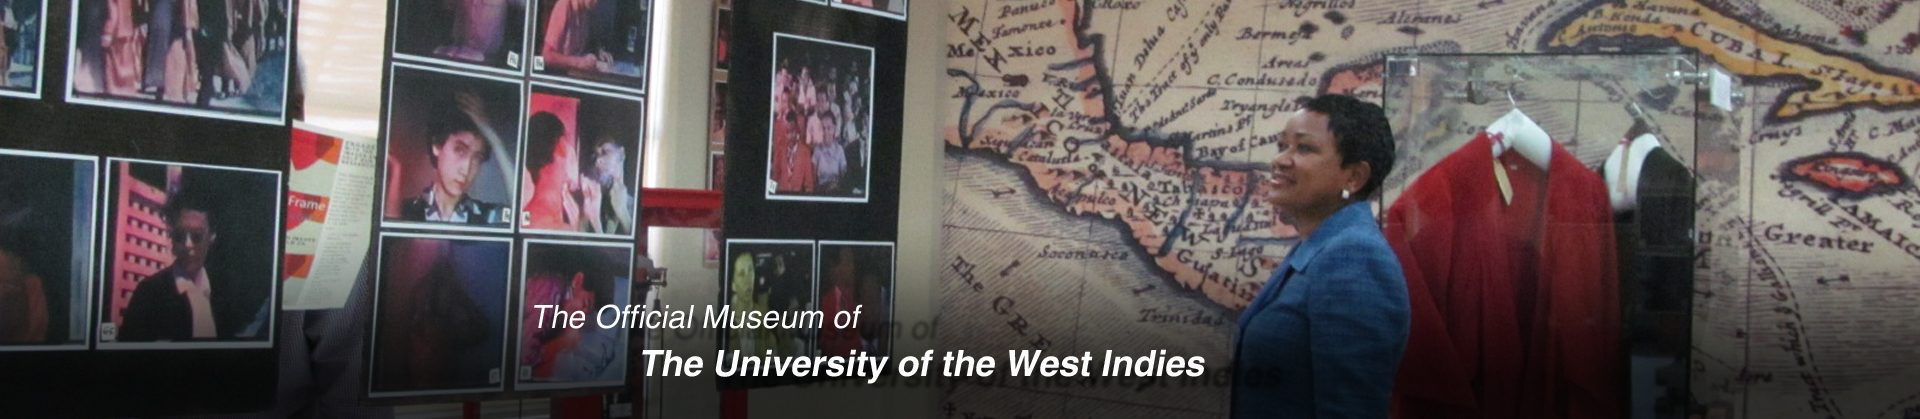 The Museum of The University of the West Indies